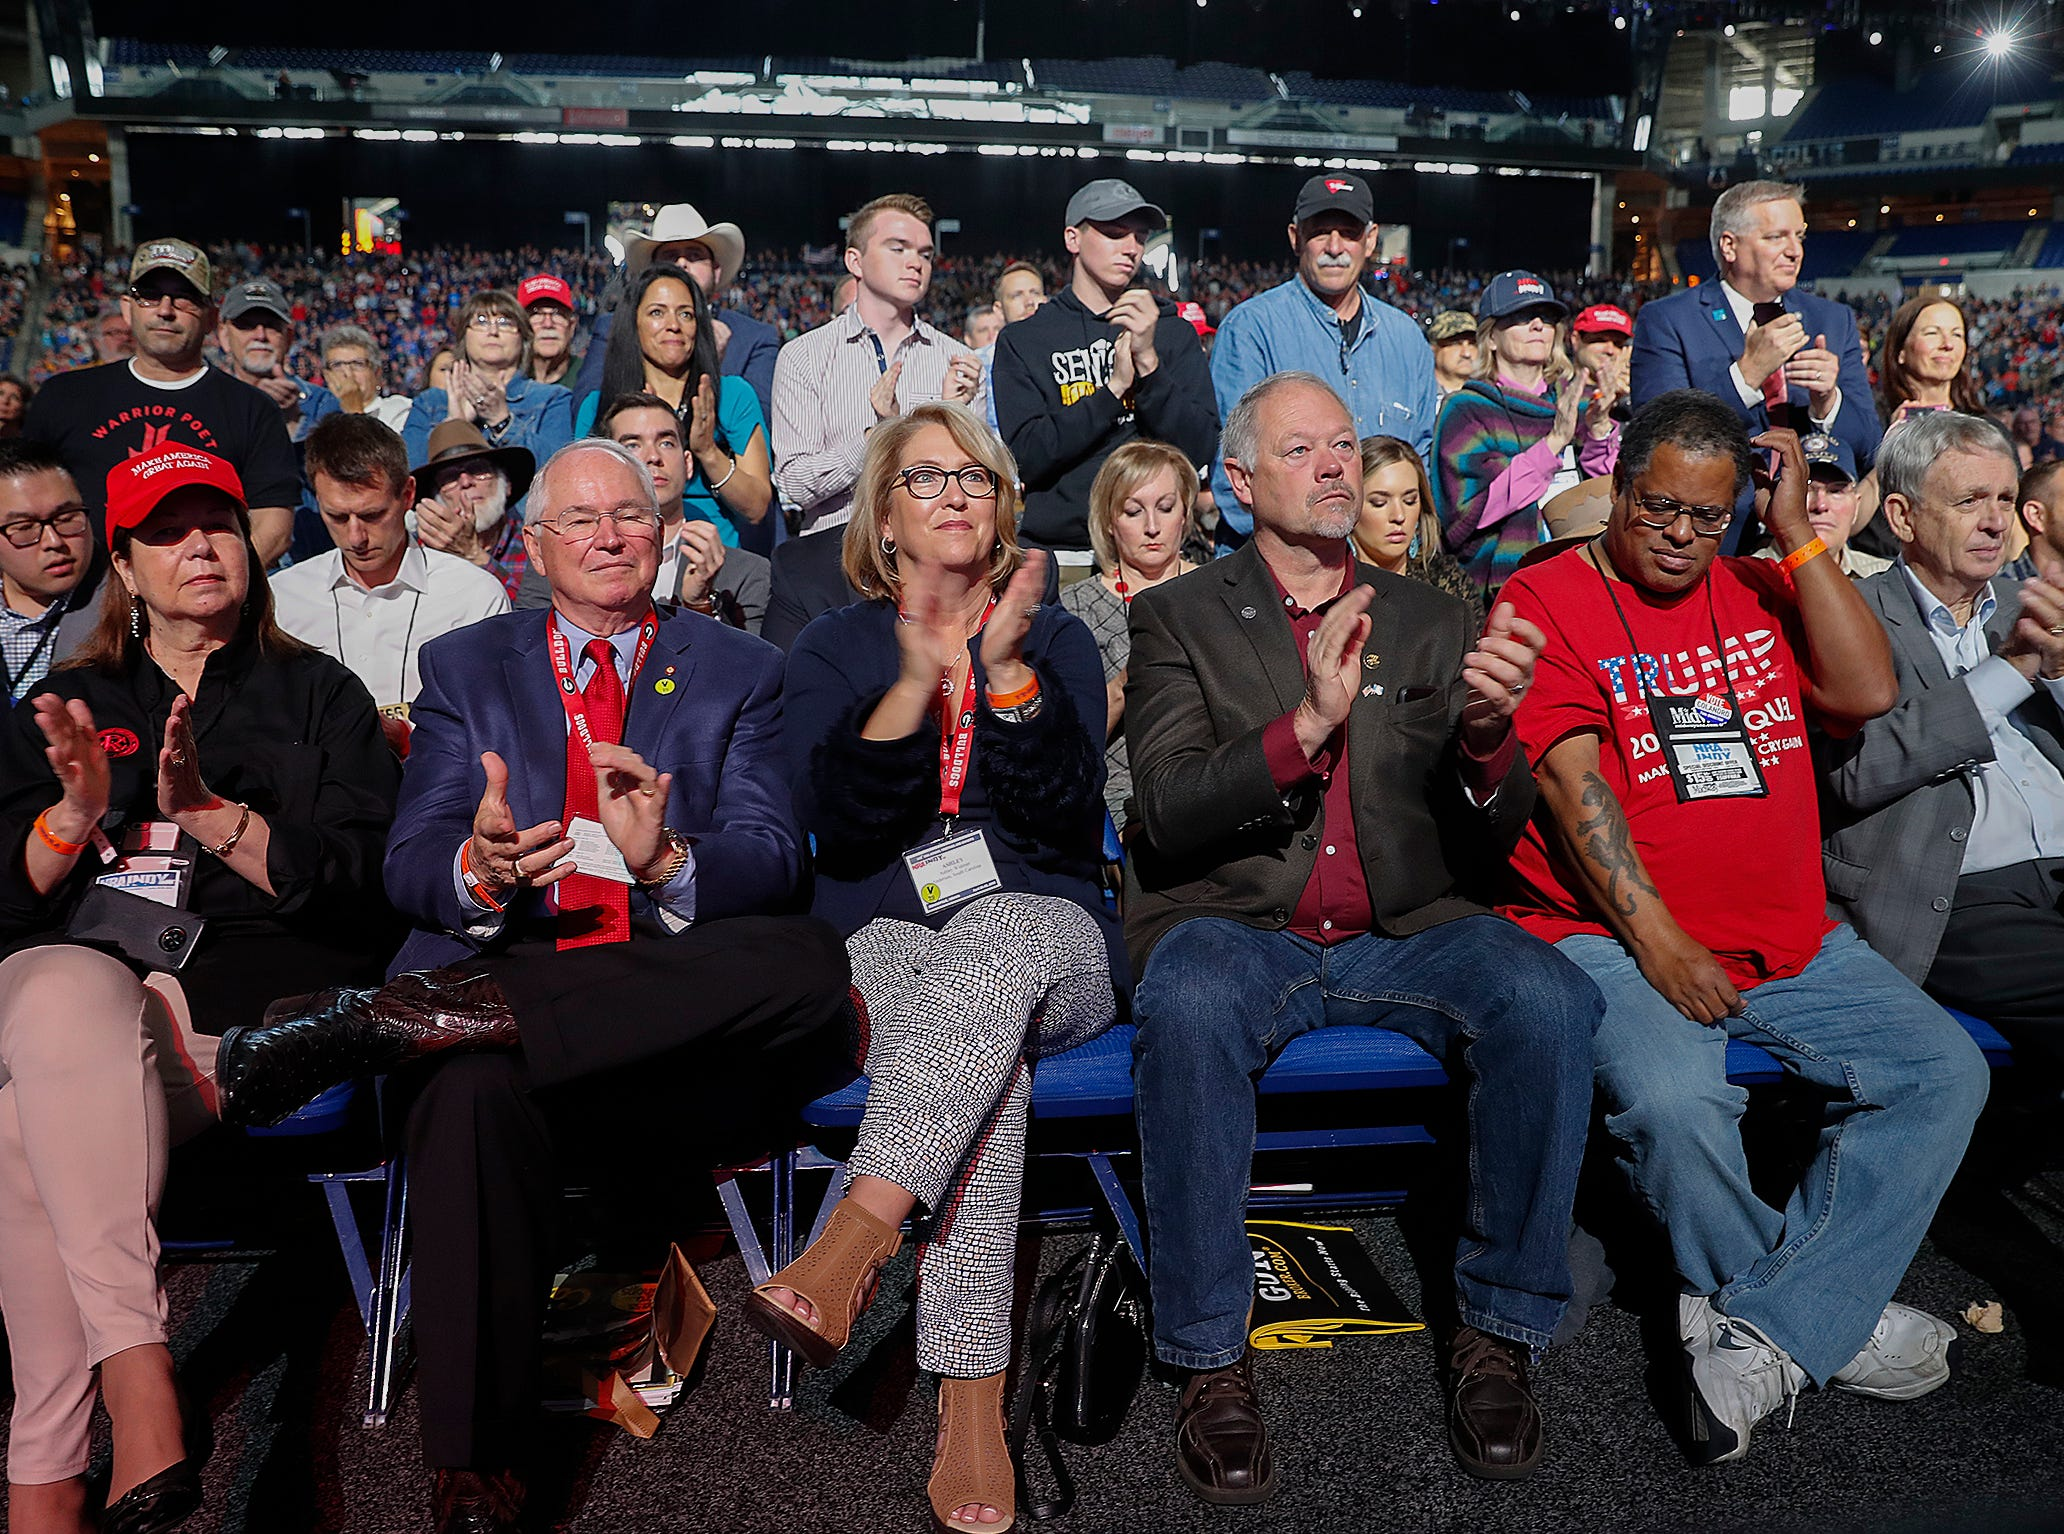 President Donald Trump supporters listen to him speak at the NRA-ILA Leadership Forum at Lucas Oil Stadium on Friday, April 26, 2019.